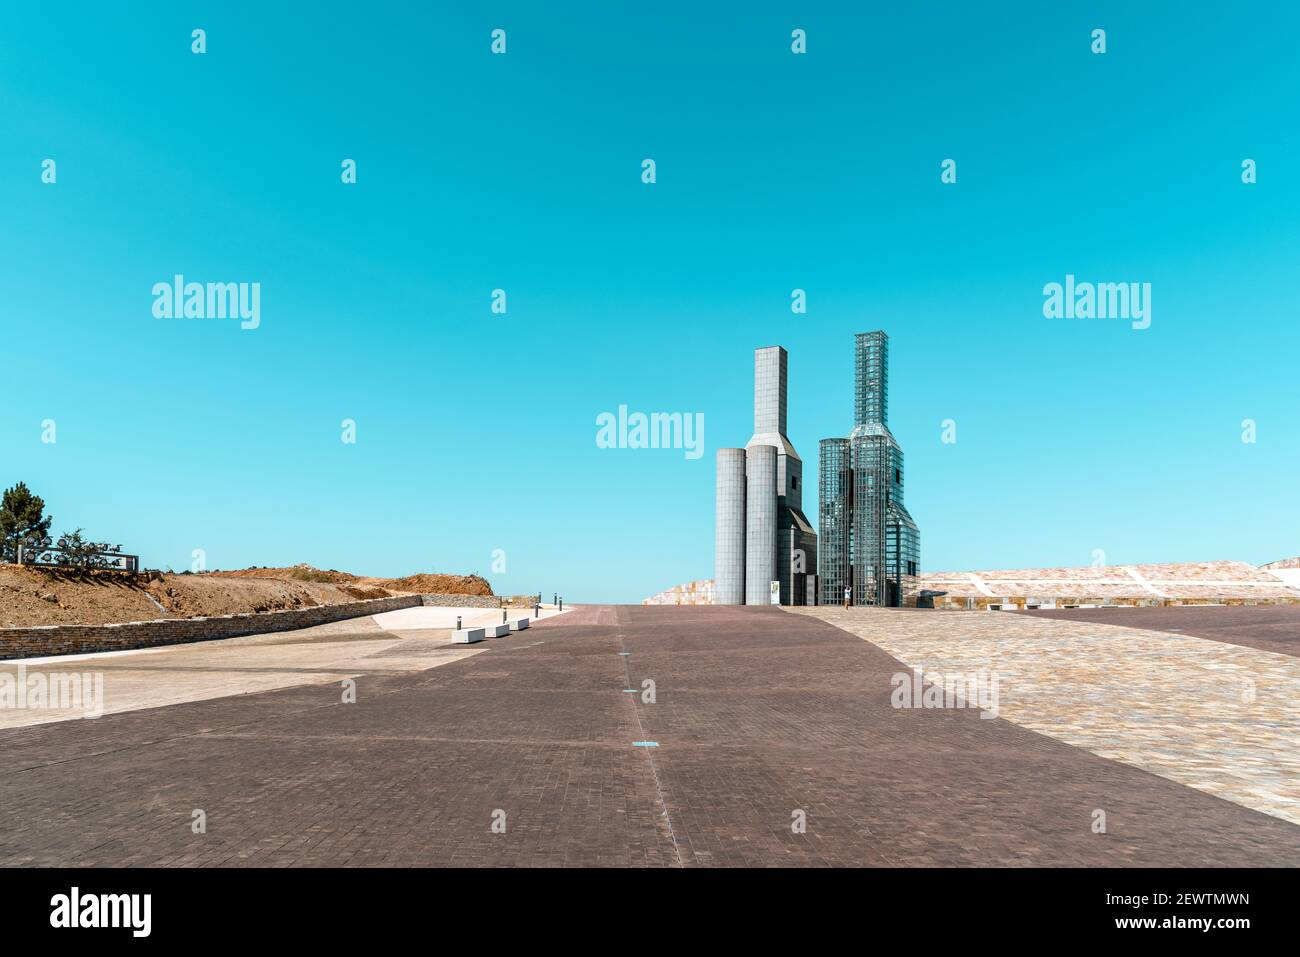 Santiago de Compostela, Spain - July 18, 2020: View of City of Culture of Galicia. Situated on the top of mount Gaias as a architectural milestone. De Stock Photo